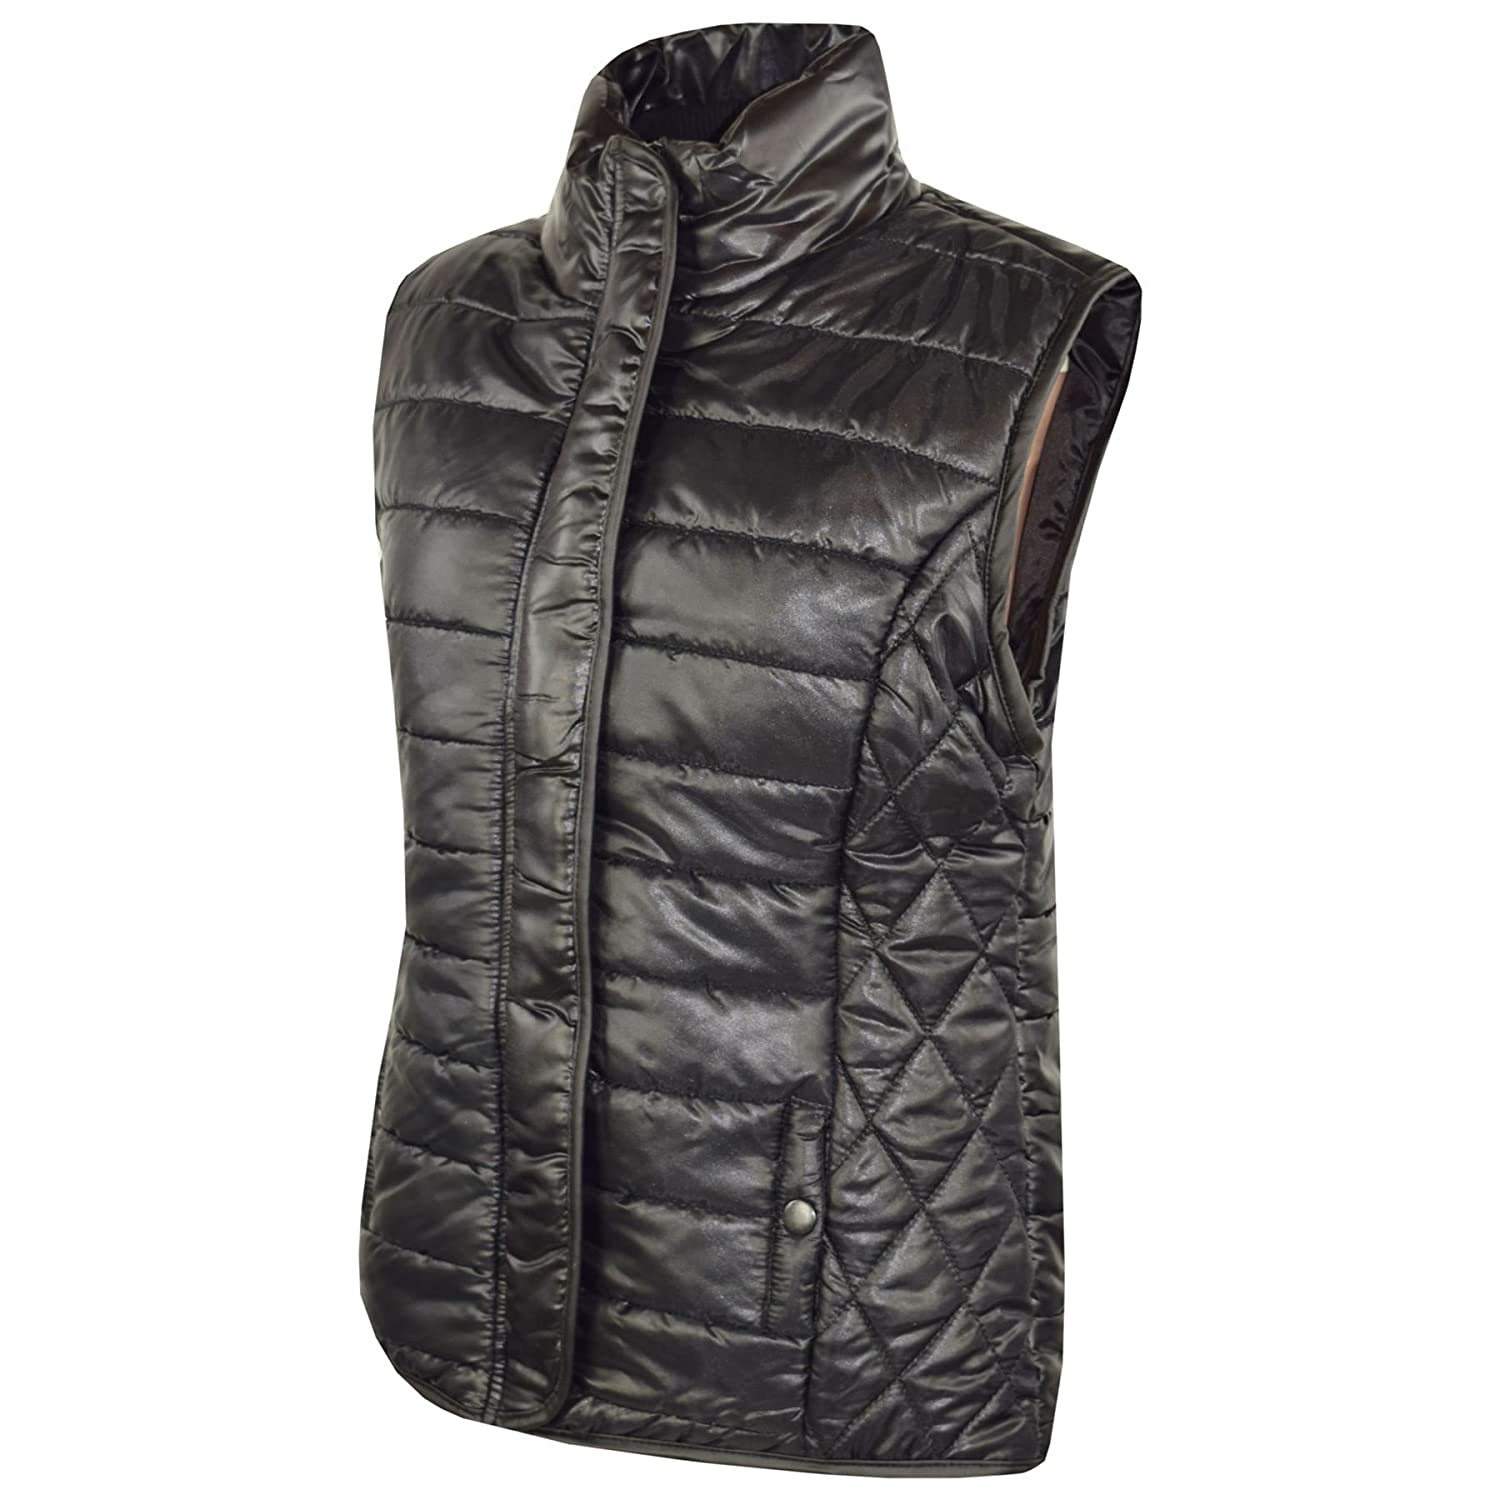 A2Z 4 Kids/® Kids Girls Boys Designers Sleeveless Wetlook Padded Lined Quilted Gilet Bodywarmer Fashion Jackets Age 5 6 7 8 9 10 11 12 13 Years